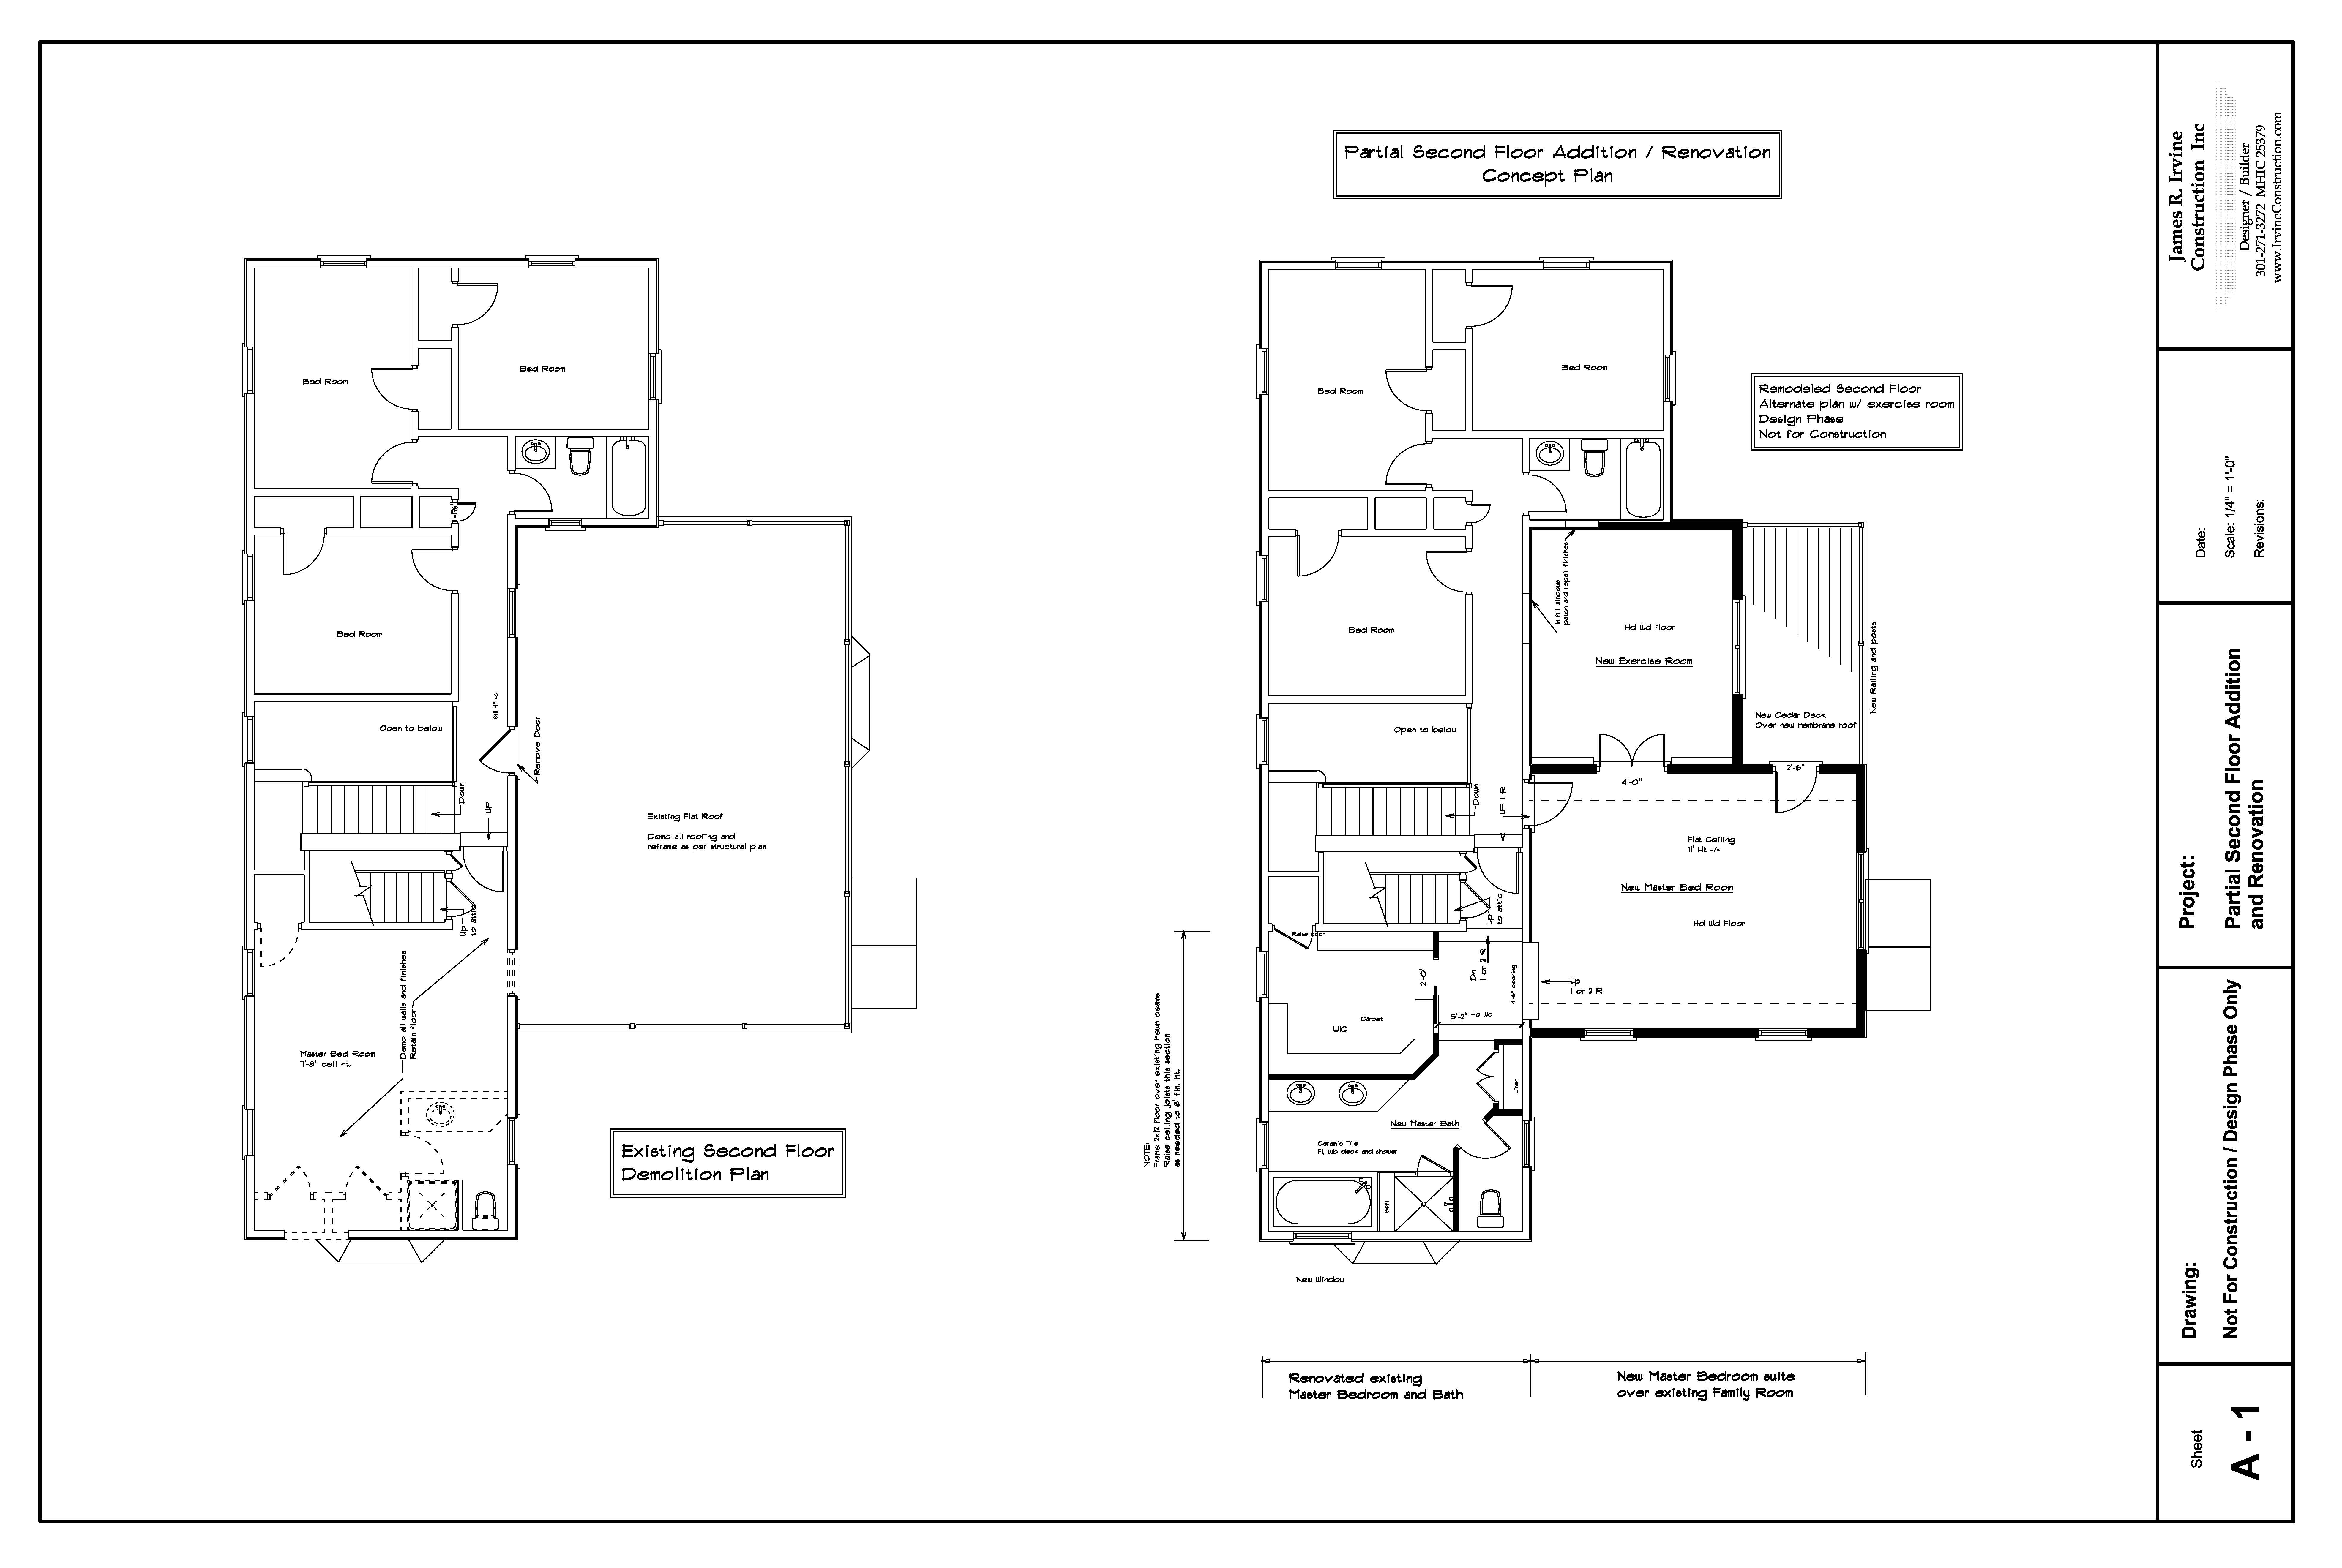 Diagram Showing An Example Of A Floor Plan Partial Second Home Addition Maryland Irvine Construction Plans For In Montgomery County